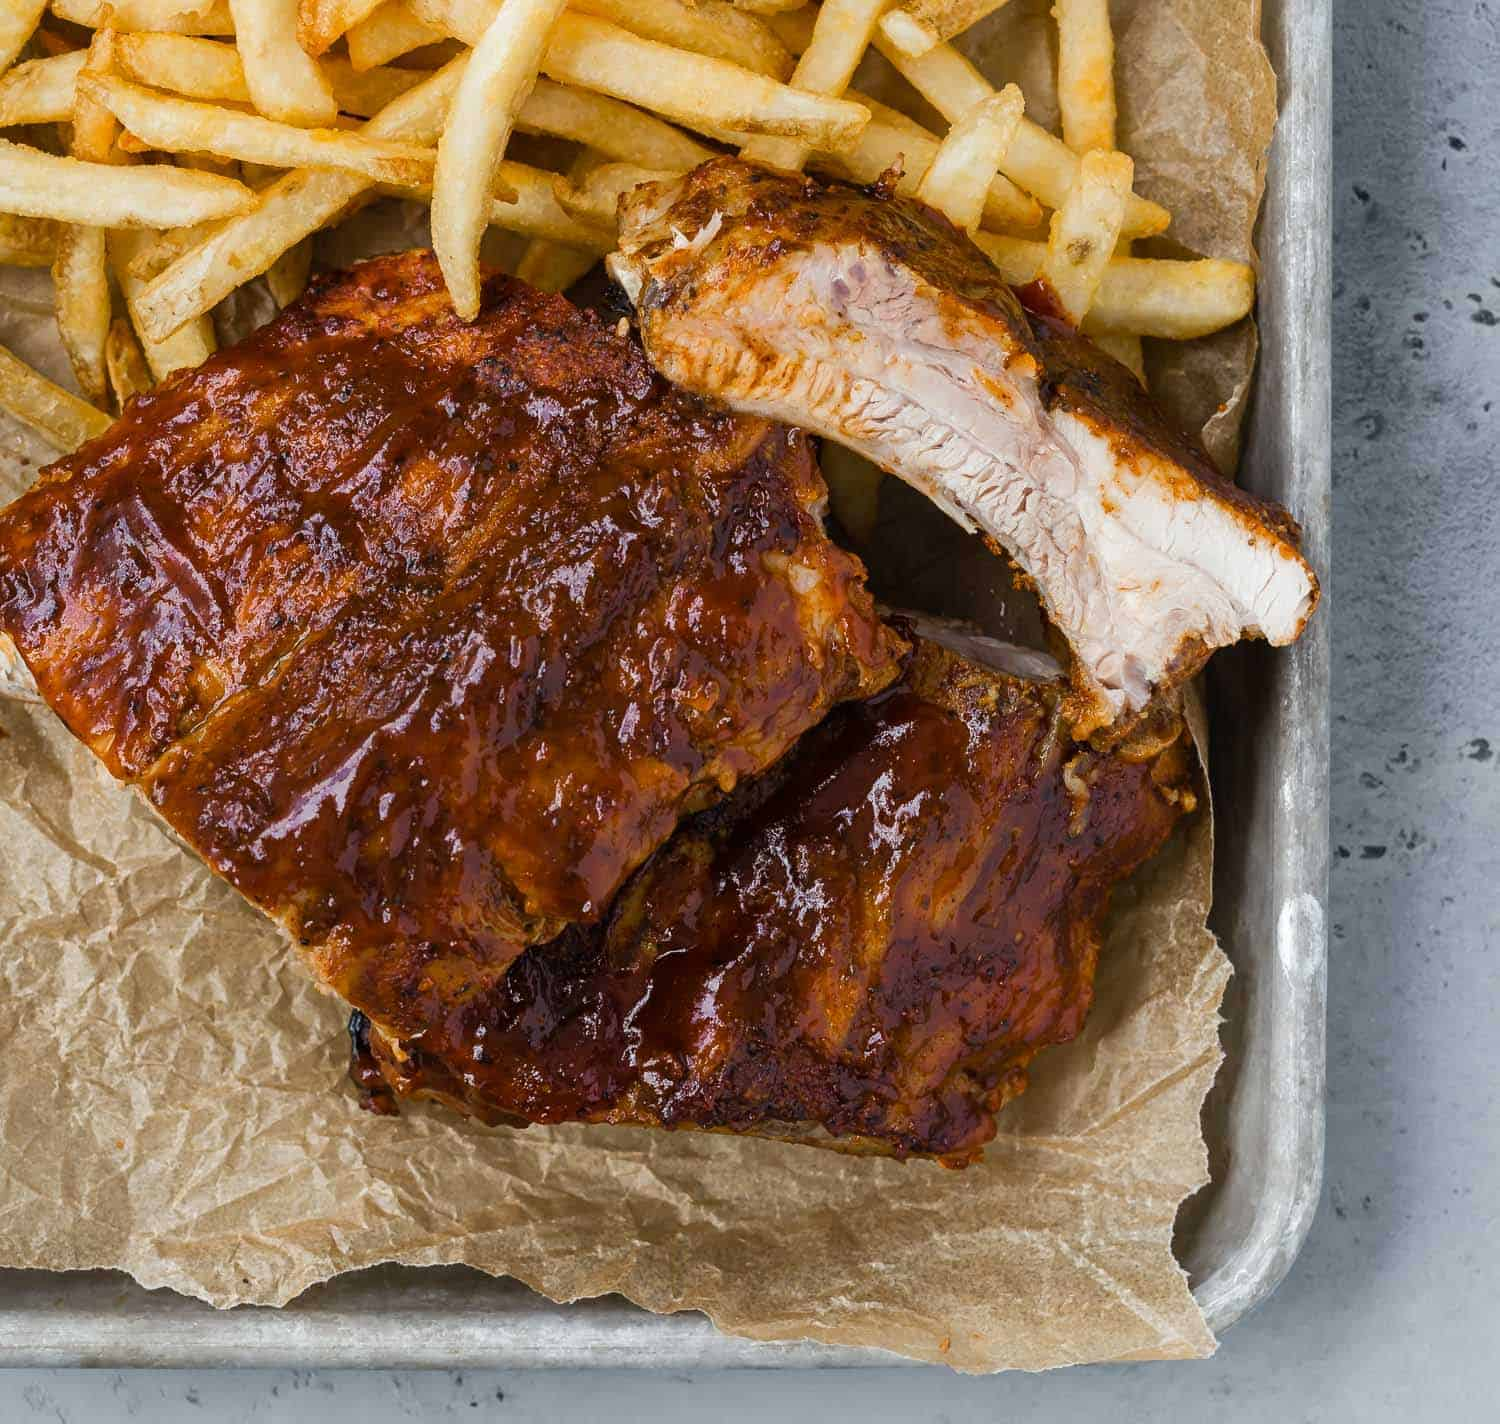 A tray lined with brown parchment, topped with bbq ribs and french fries.